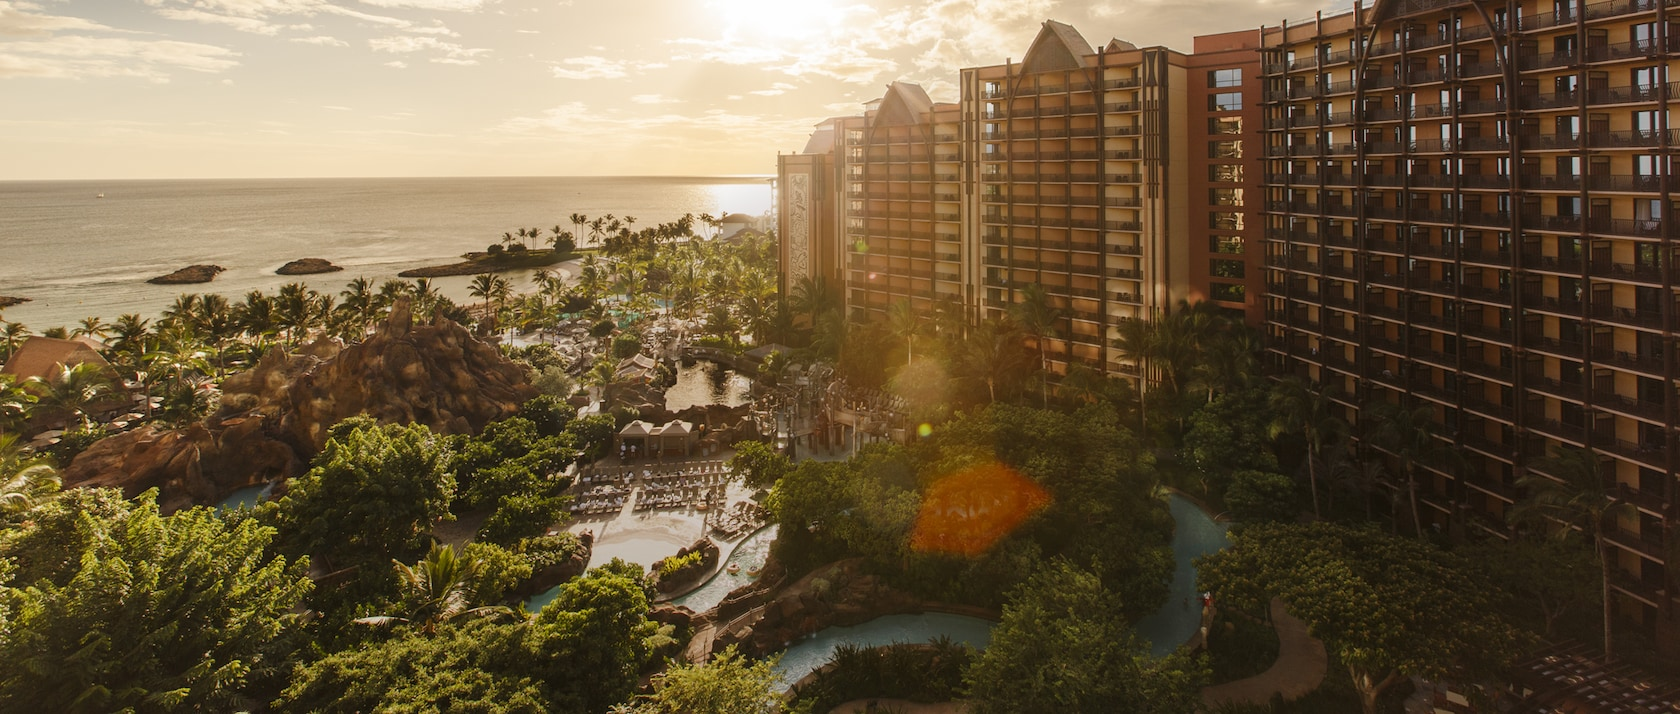 The Aulani Resort and the Pacific Ocean at sunset